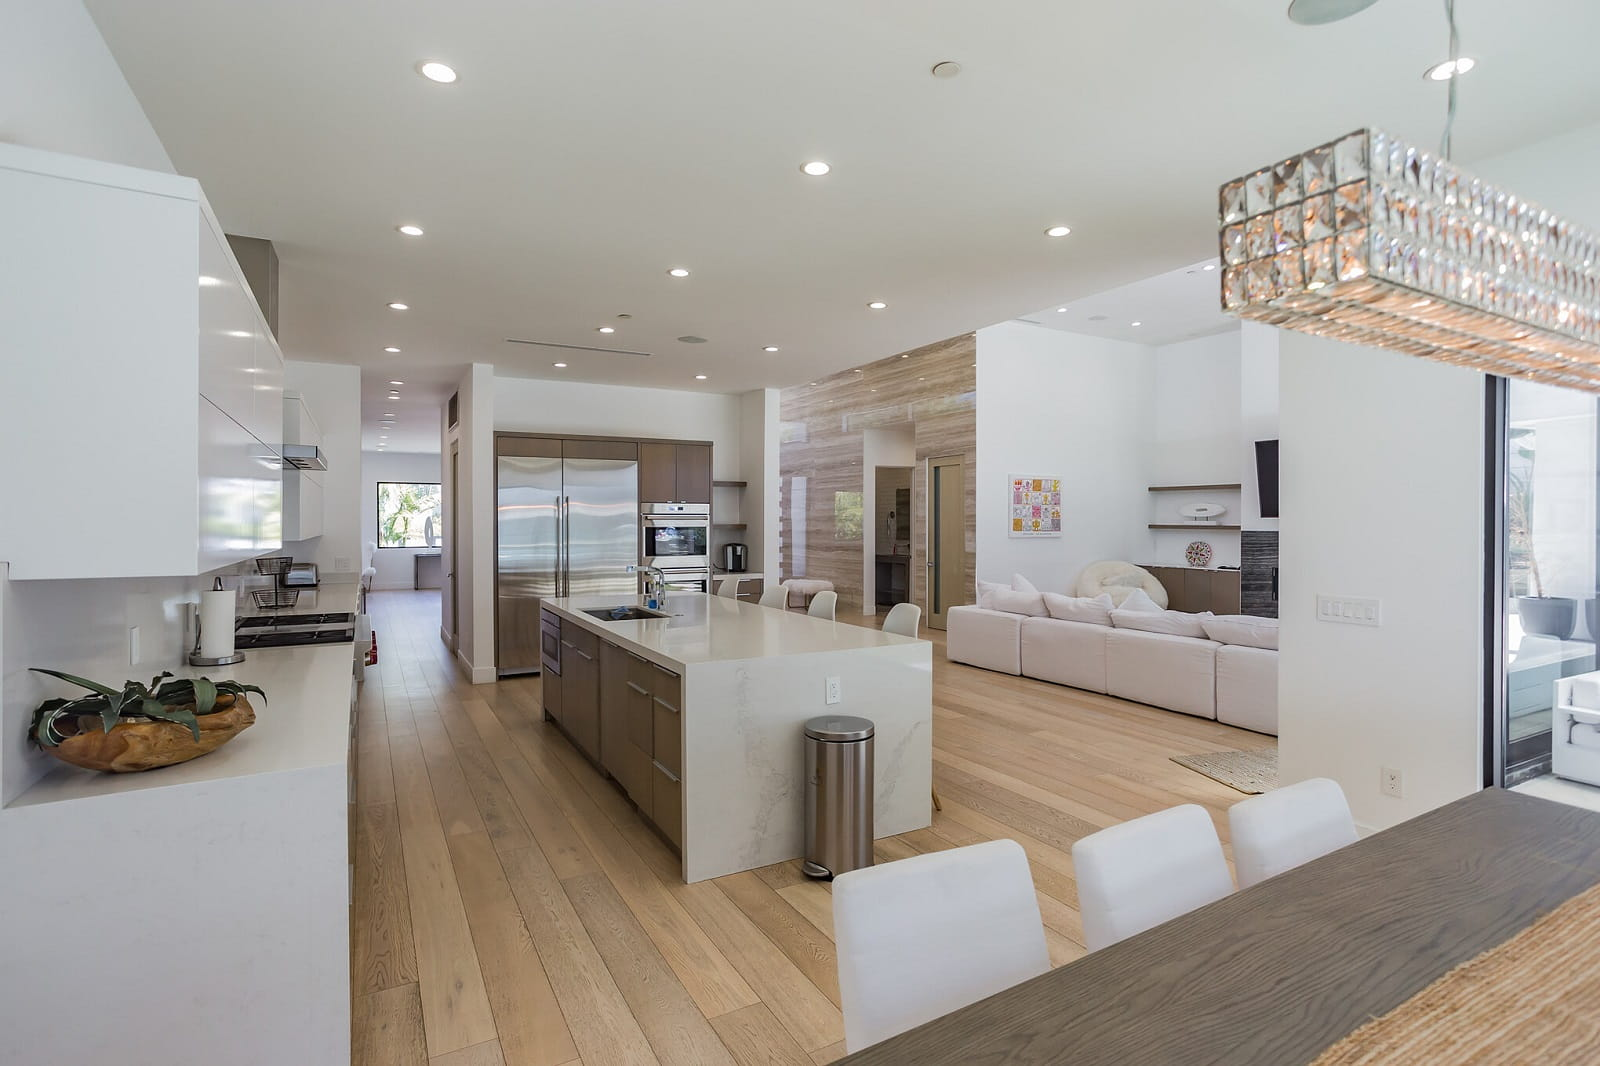 Real Estate Photography in Calabasas - CA - USA - Kitchen View